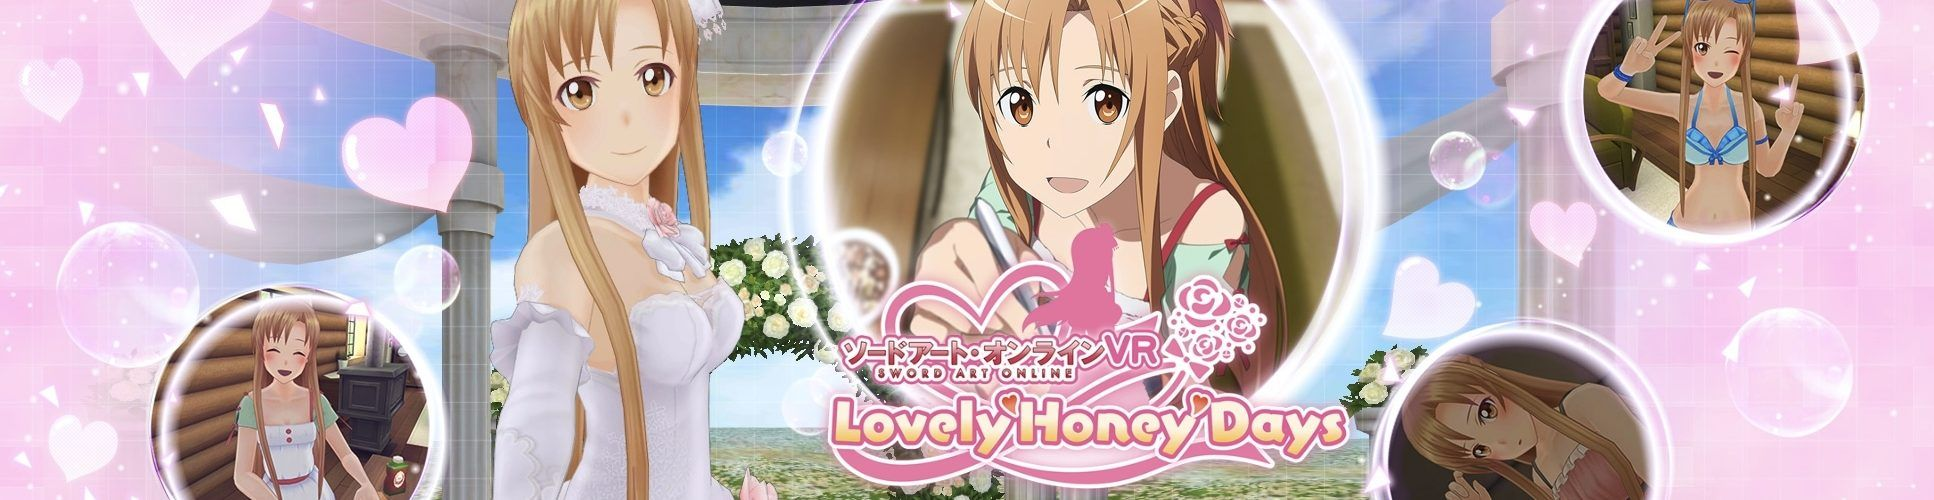 Take Asuna out on a Date in Latest SAO VR App! - J-List Blog